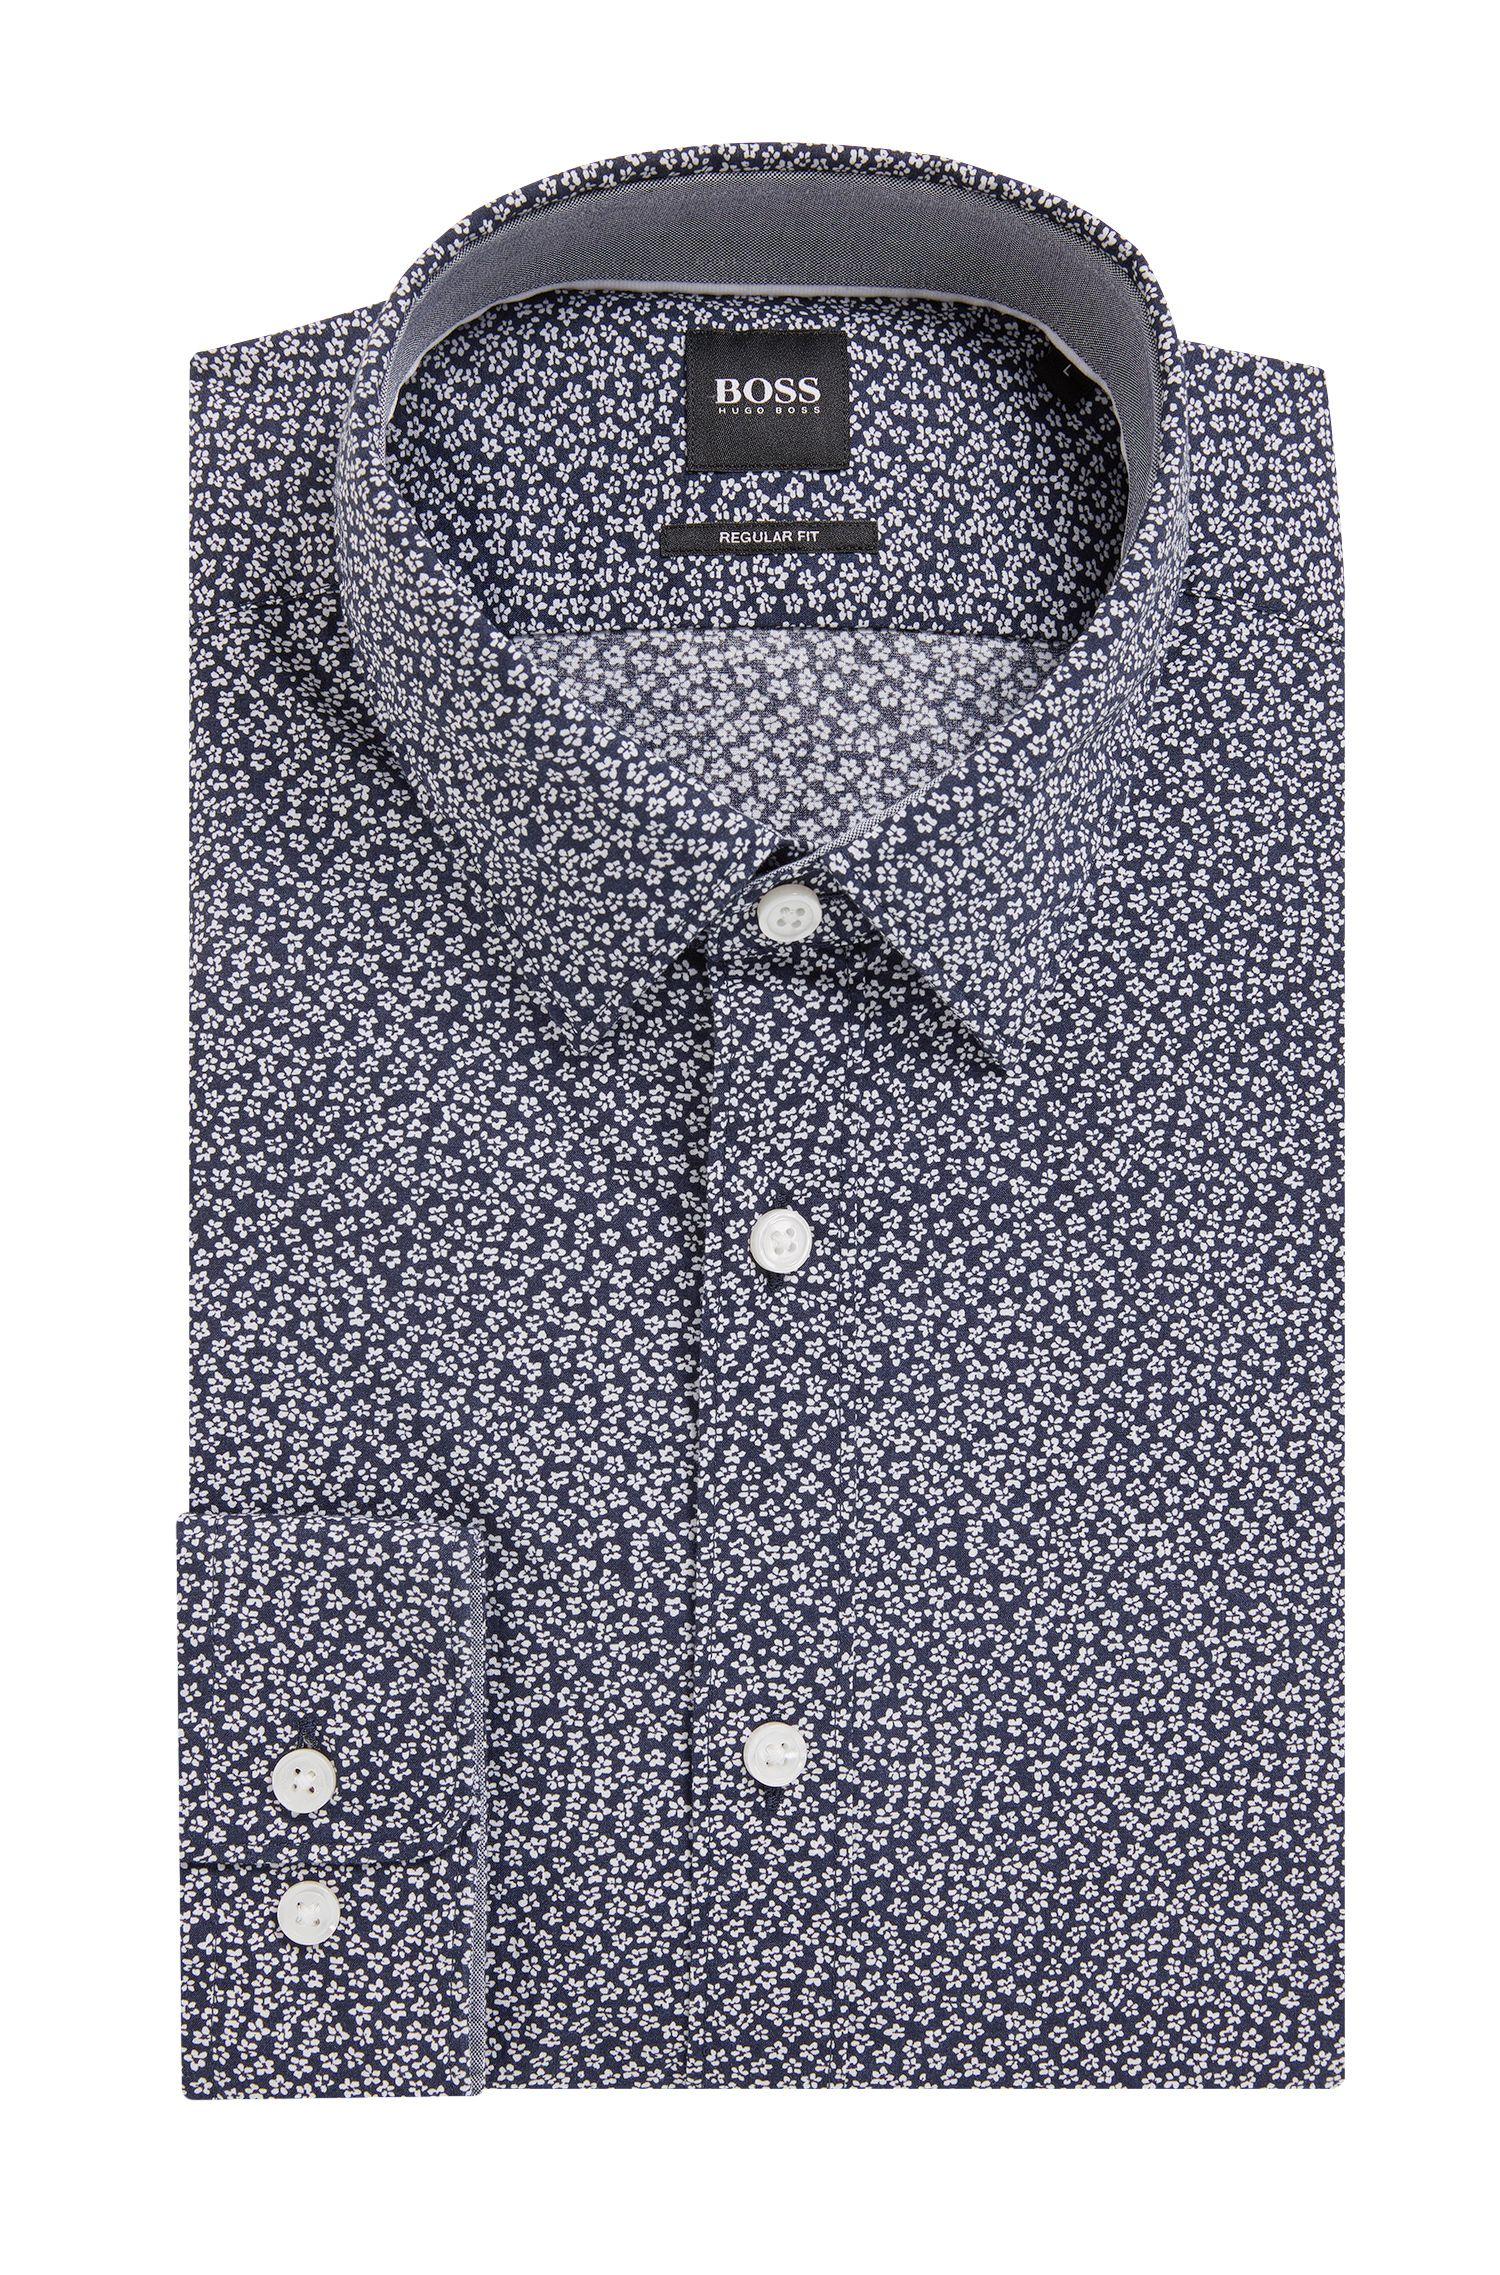 Regular-fit shirt in floral-print cotton